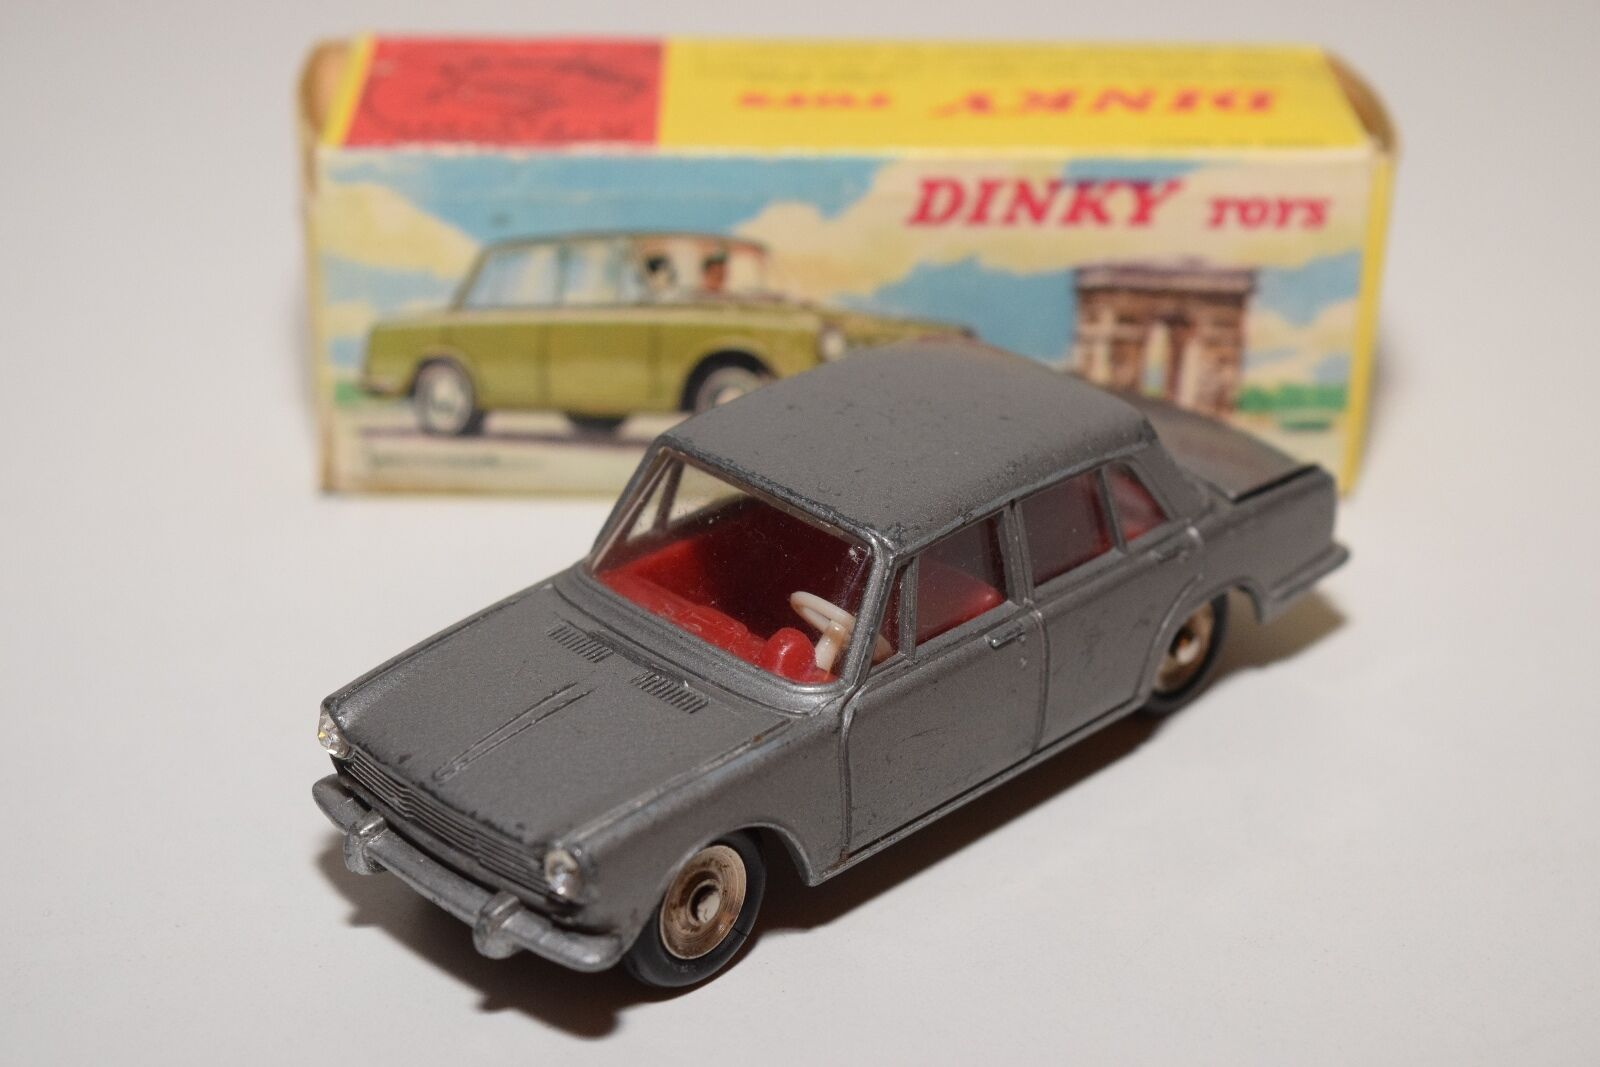 F DINKY TOYS 523 SIMCA 1500 SALOON METALLIC GREY EXCELLENT BOXED